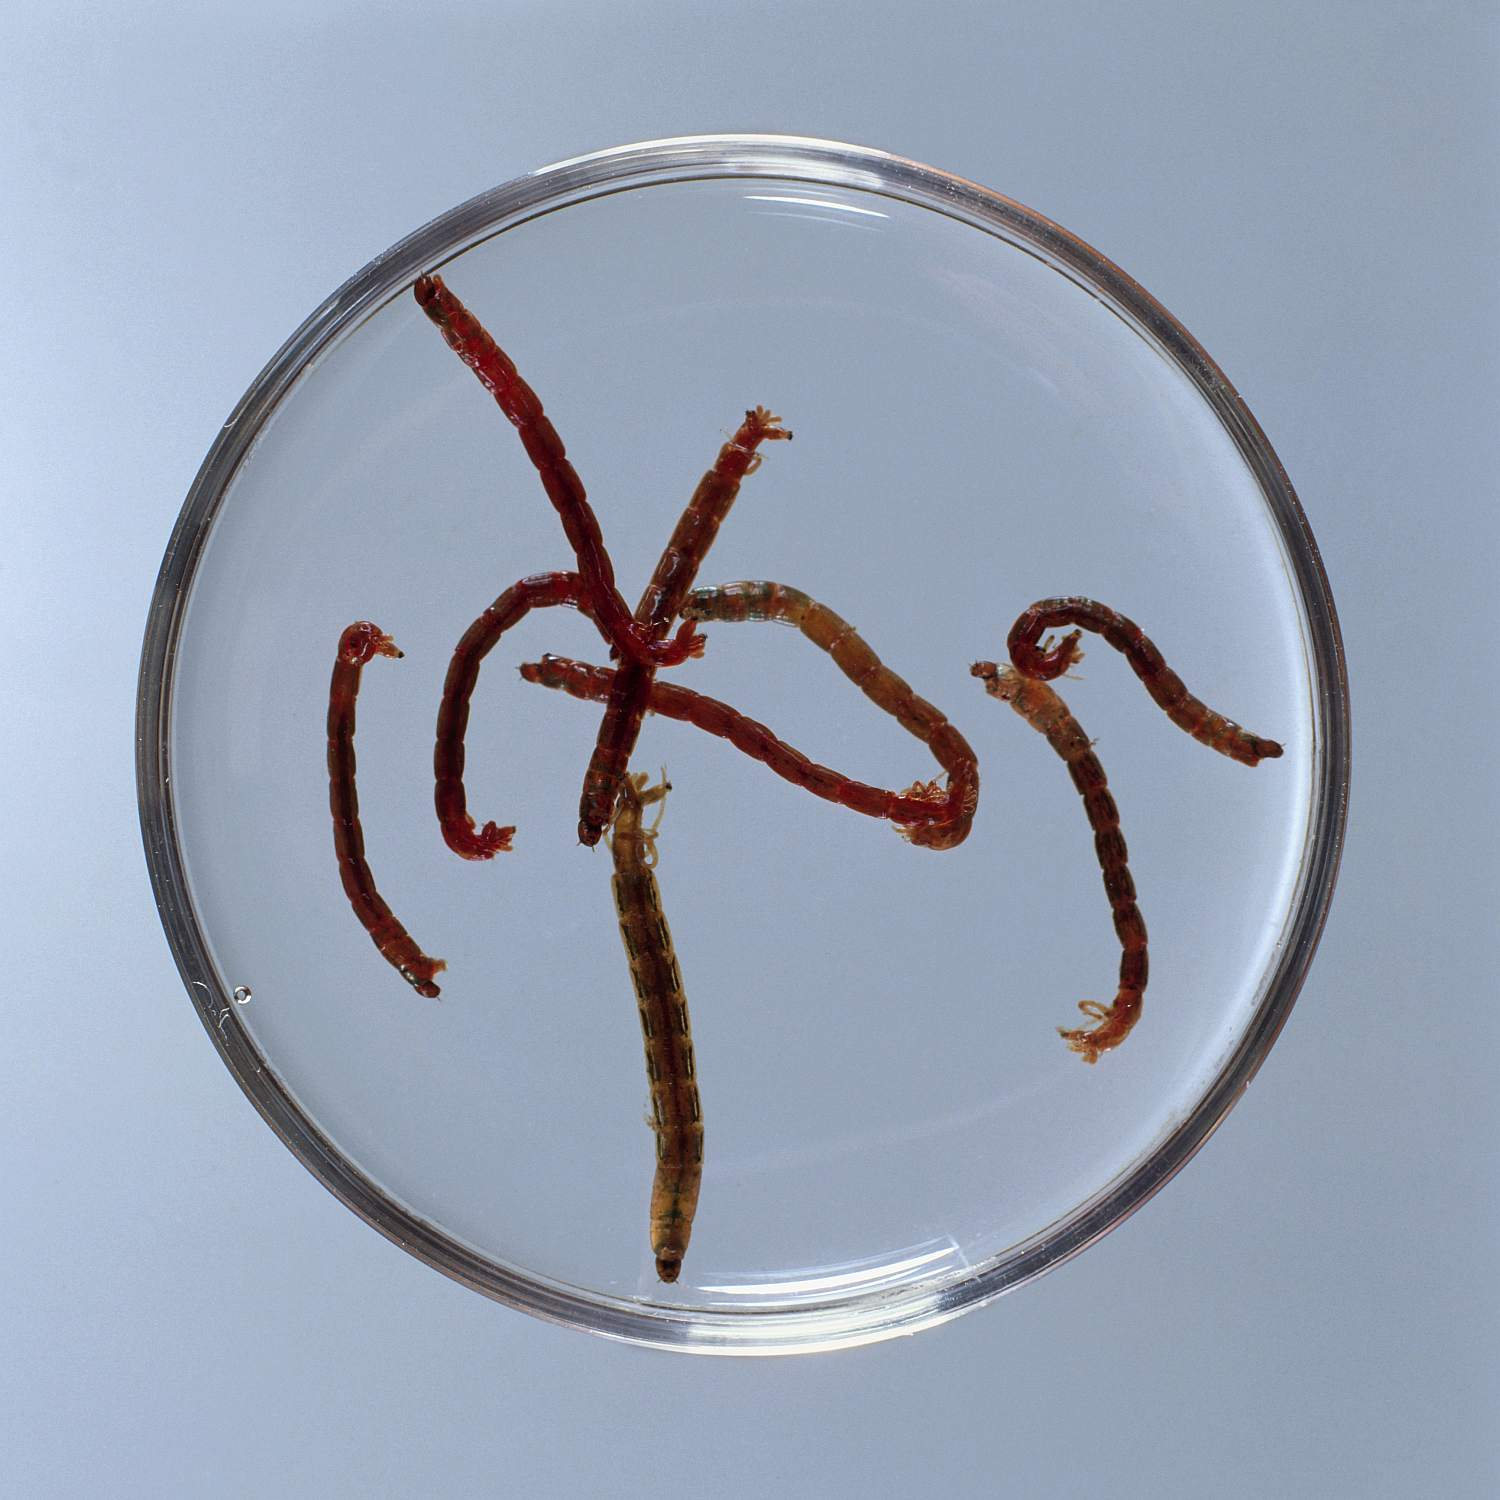 Bloodworms (Glycera dibranchiata) in petri dish